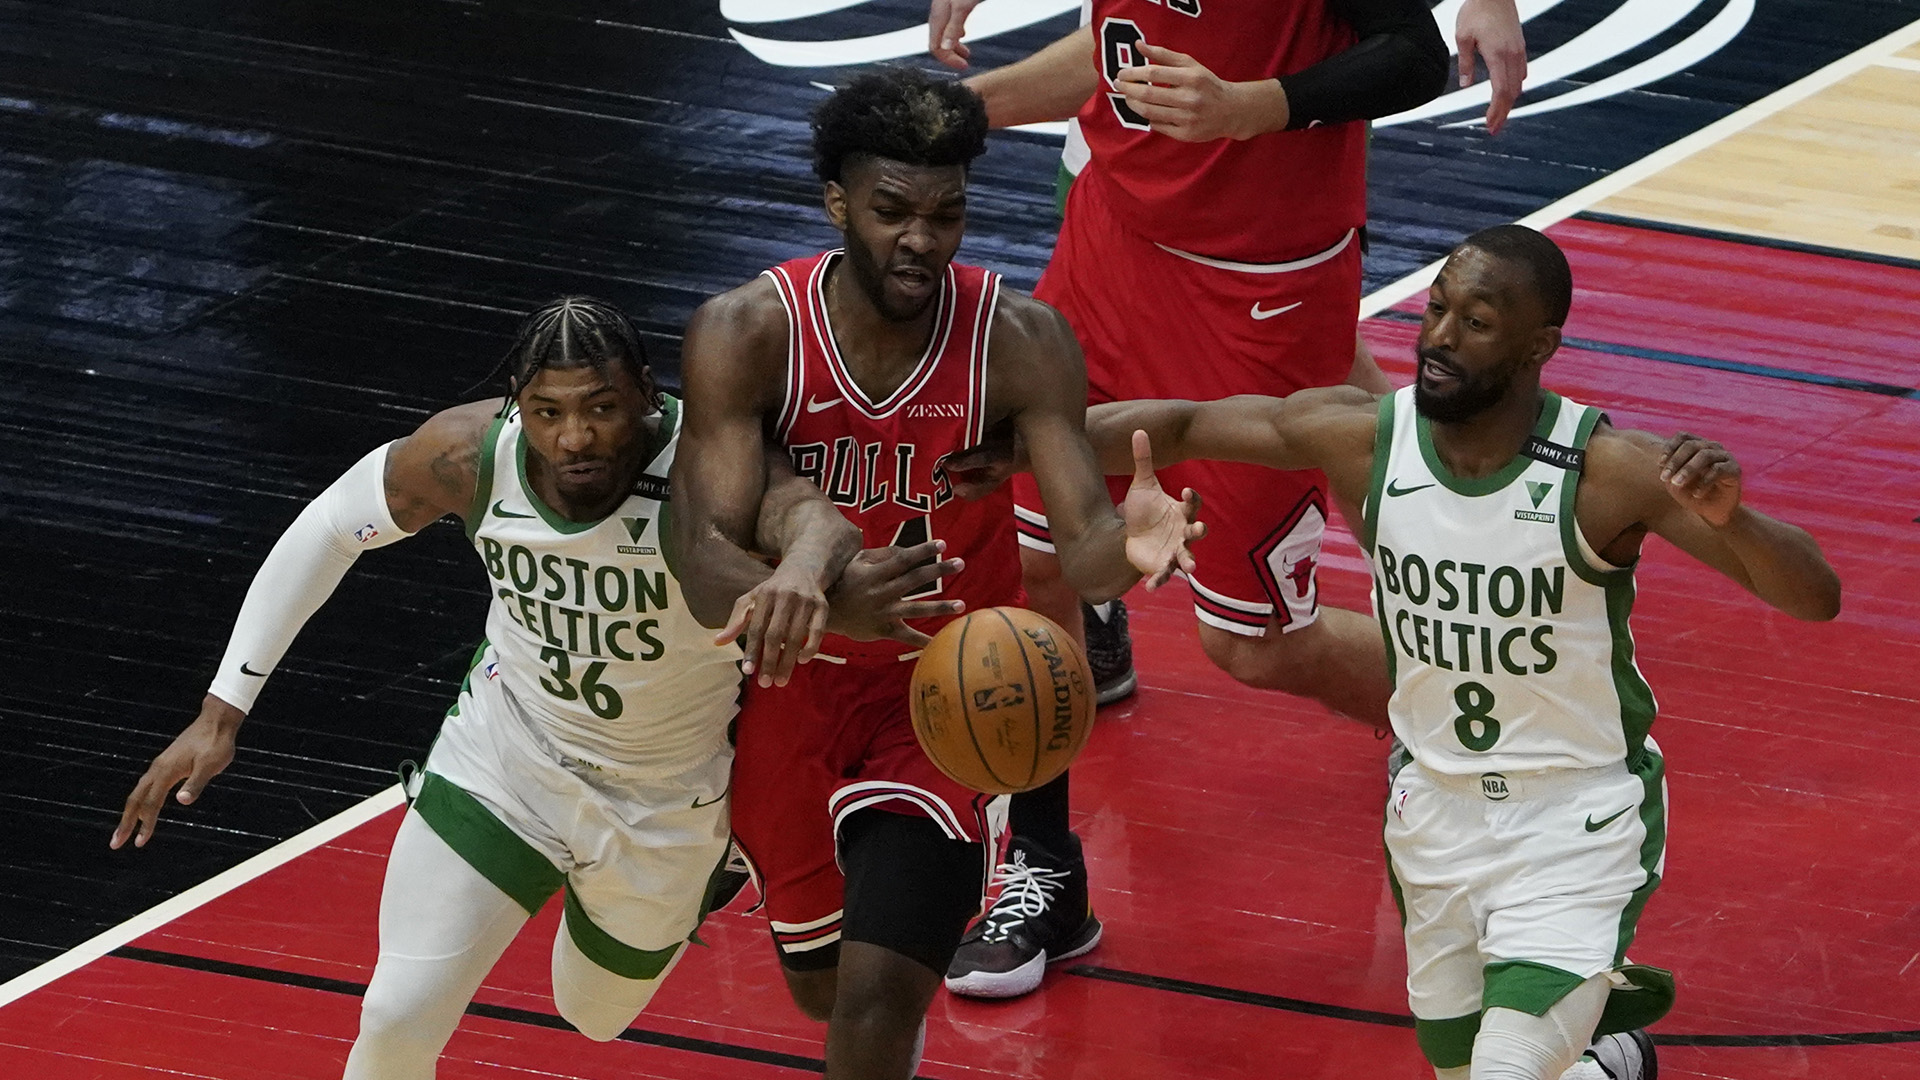 In pivotal game, Celtics down double digits to Bulls